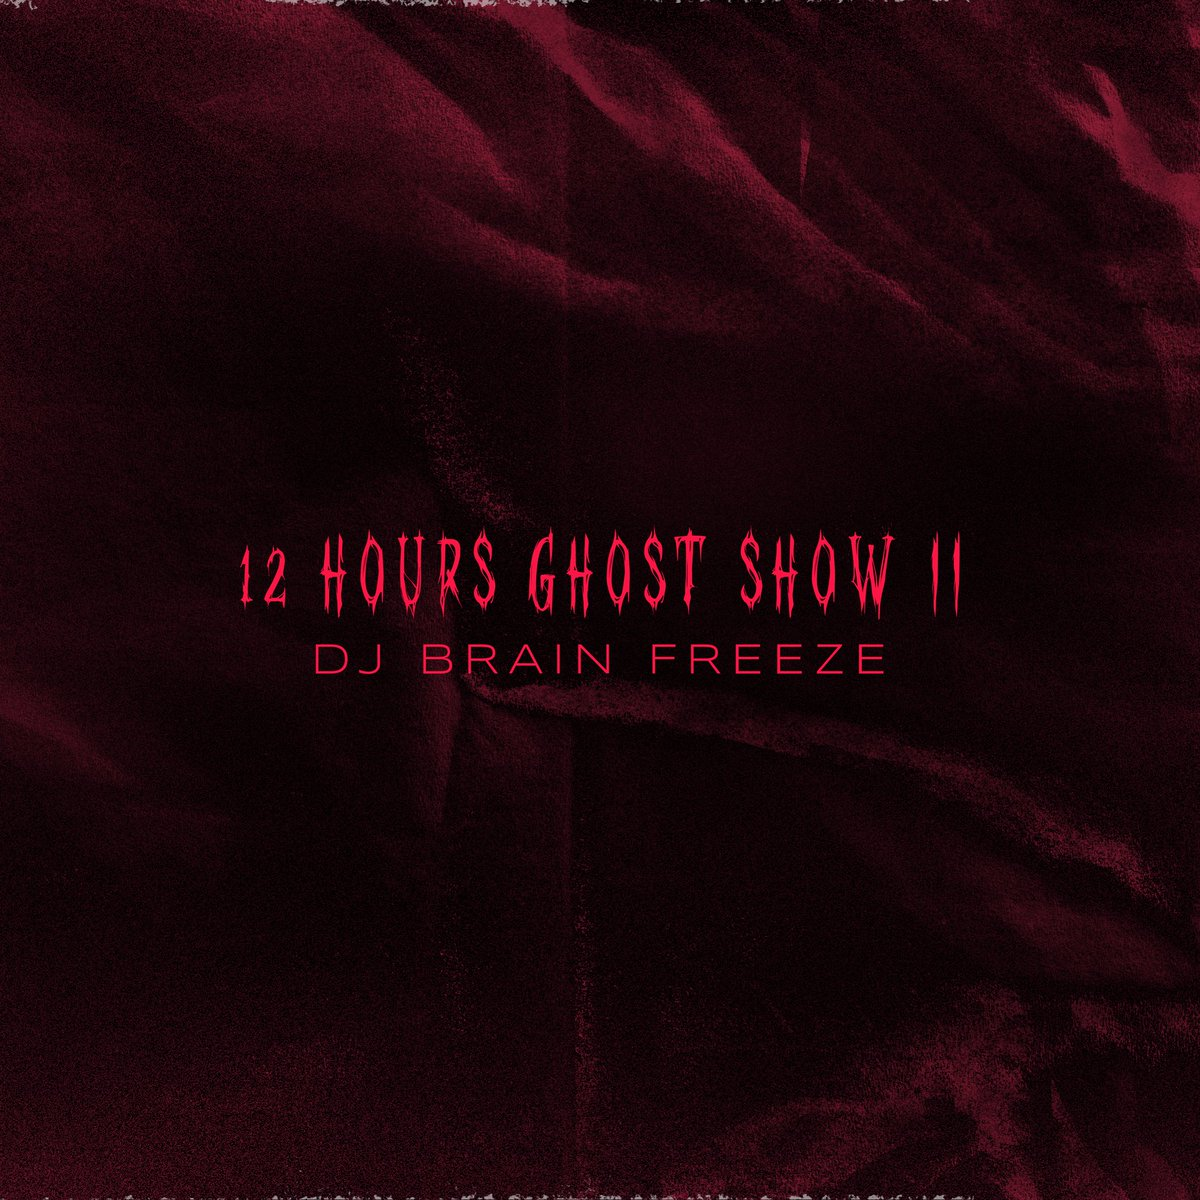 12 HOURS GHOST SHOW II 👻🎃  . . . . . . . . #edm #music #dj #love #housemusic #hiphop #producer #rave #dance #techno #trap #party #house #deephouse #electronicmusic #rap #djlife #art #beats #festival #artist #edmlifestyle #tomorrowland https://t.co/DDUkOQPYhp